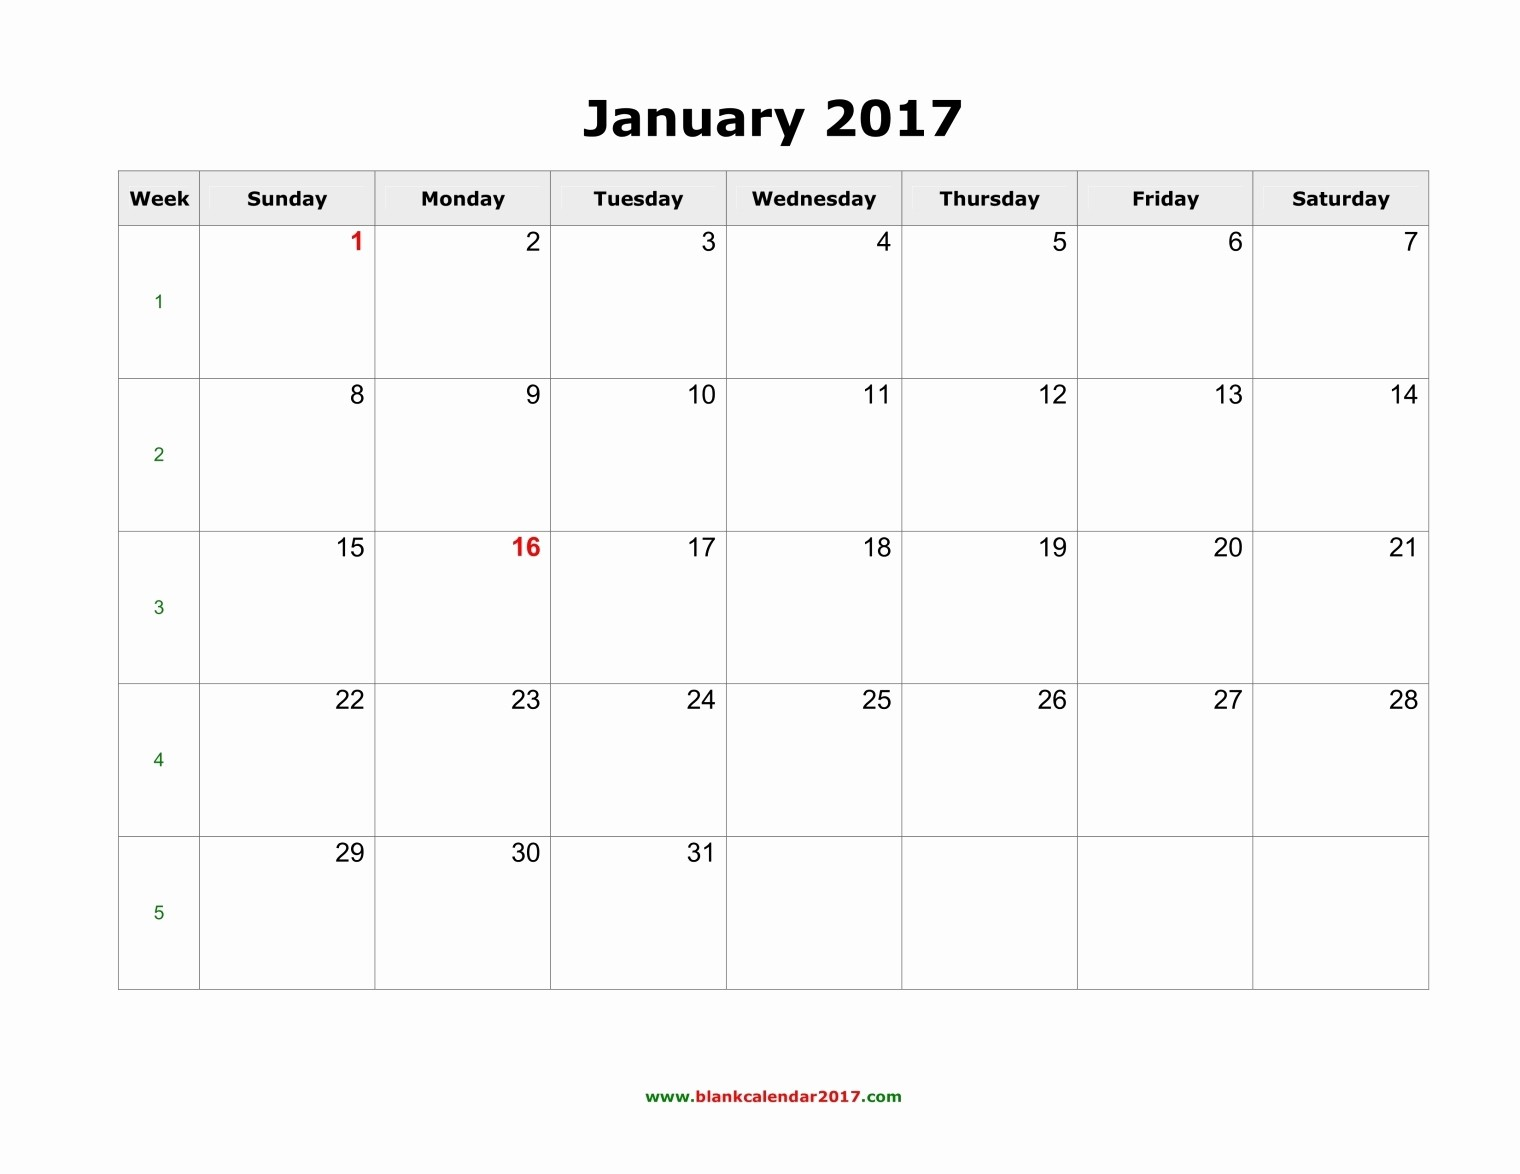 2017 Calendar with Holidays Template Inspirational Blank Calendar January 2017 Landscape